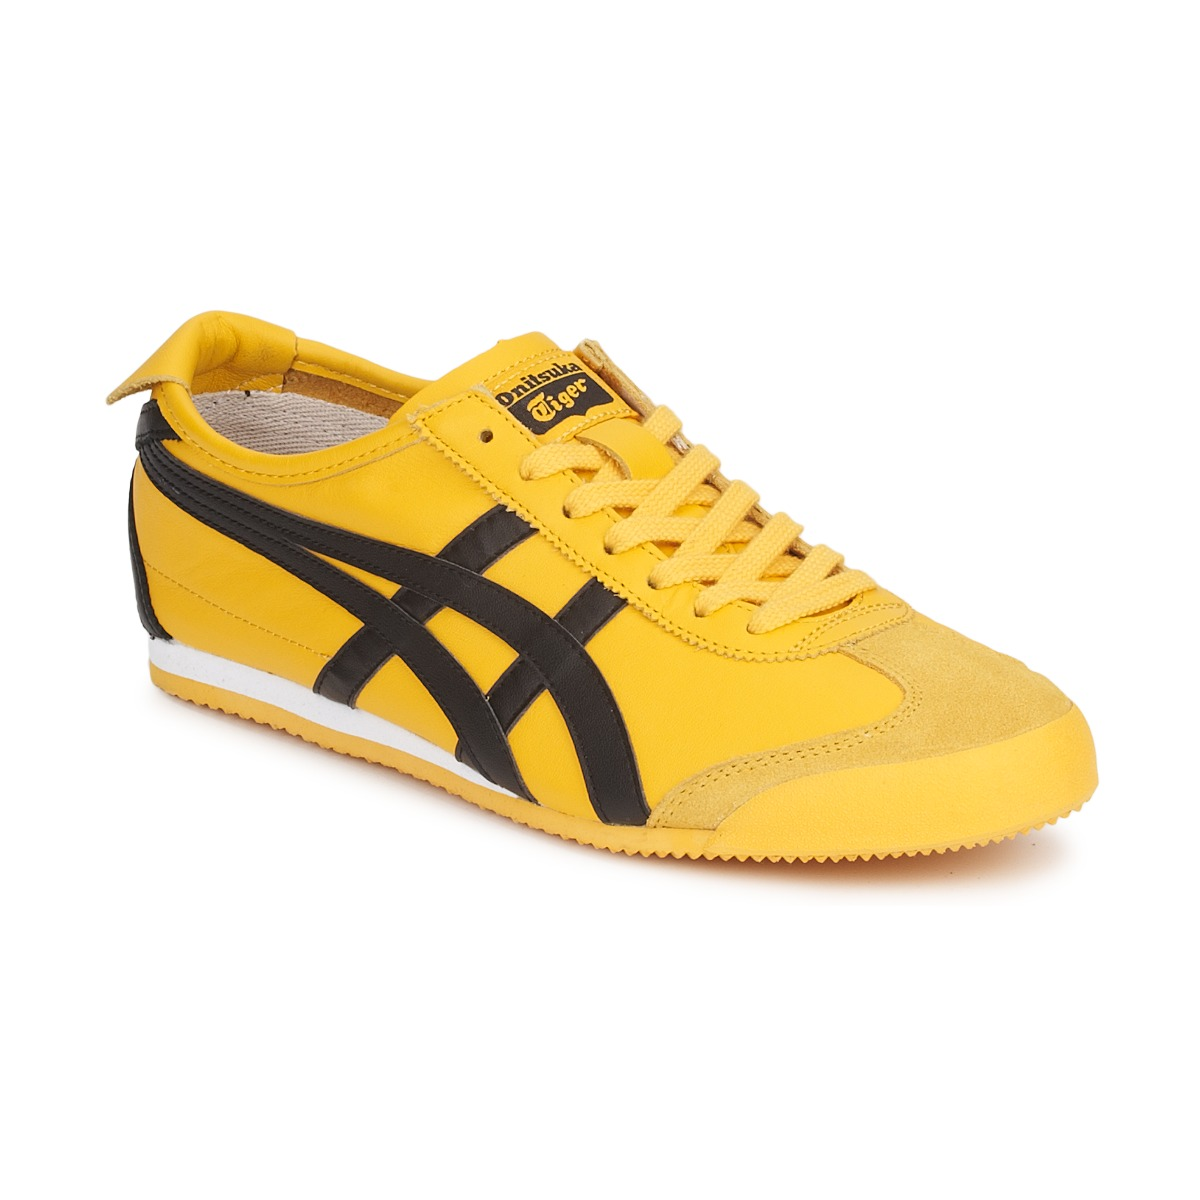 Onitsuka Tiger MEXICO 66 Yellow / Black